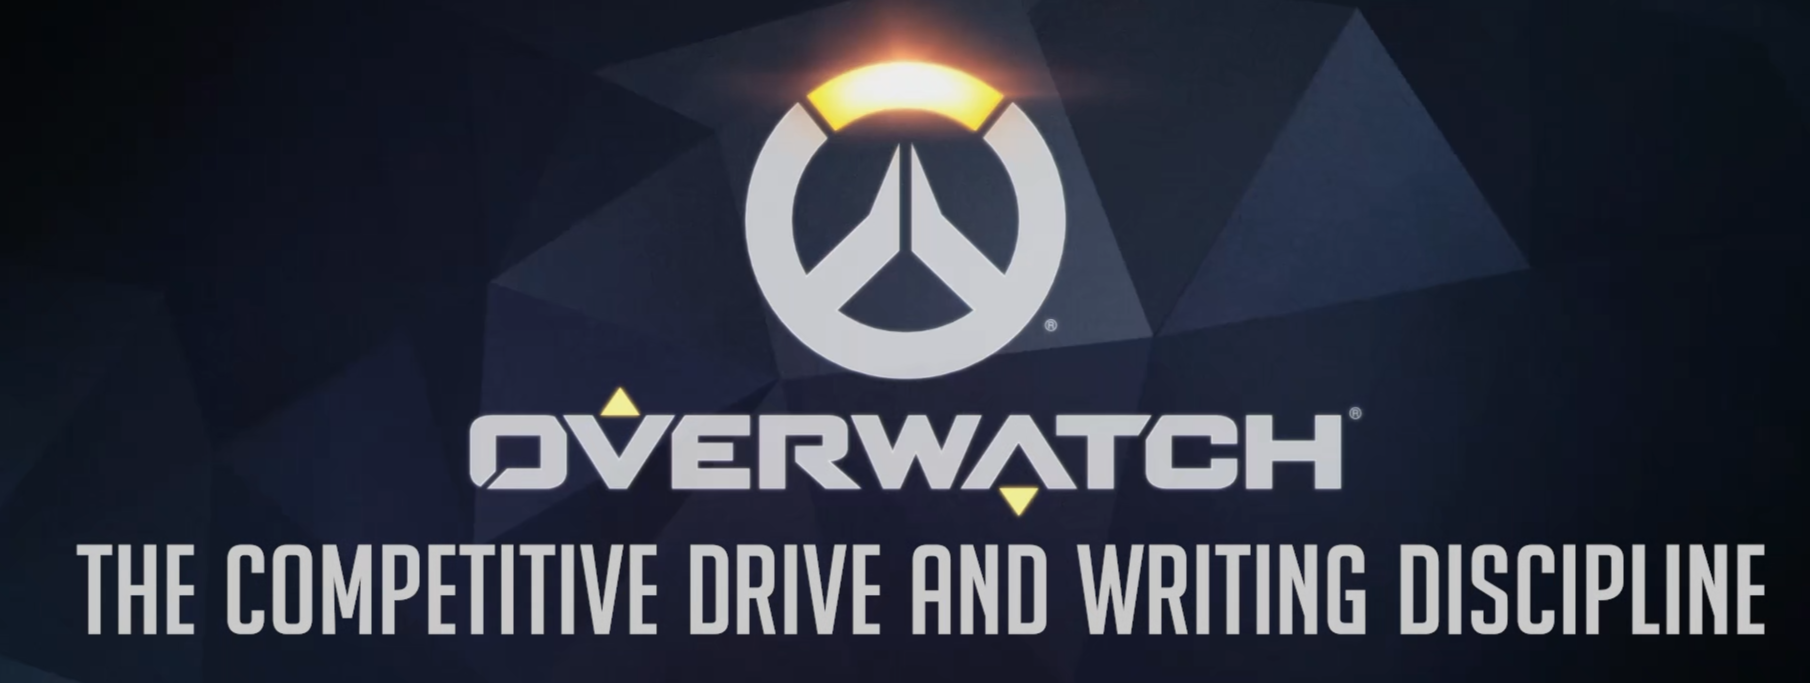 Overwatch and the Competitive Drive as it Relates to Writing Discipline